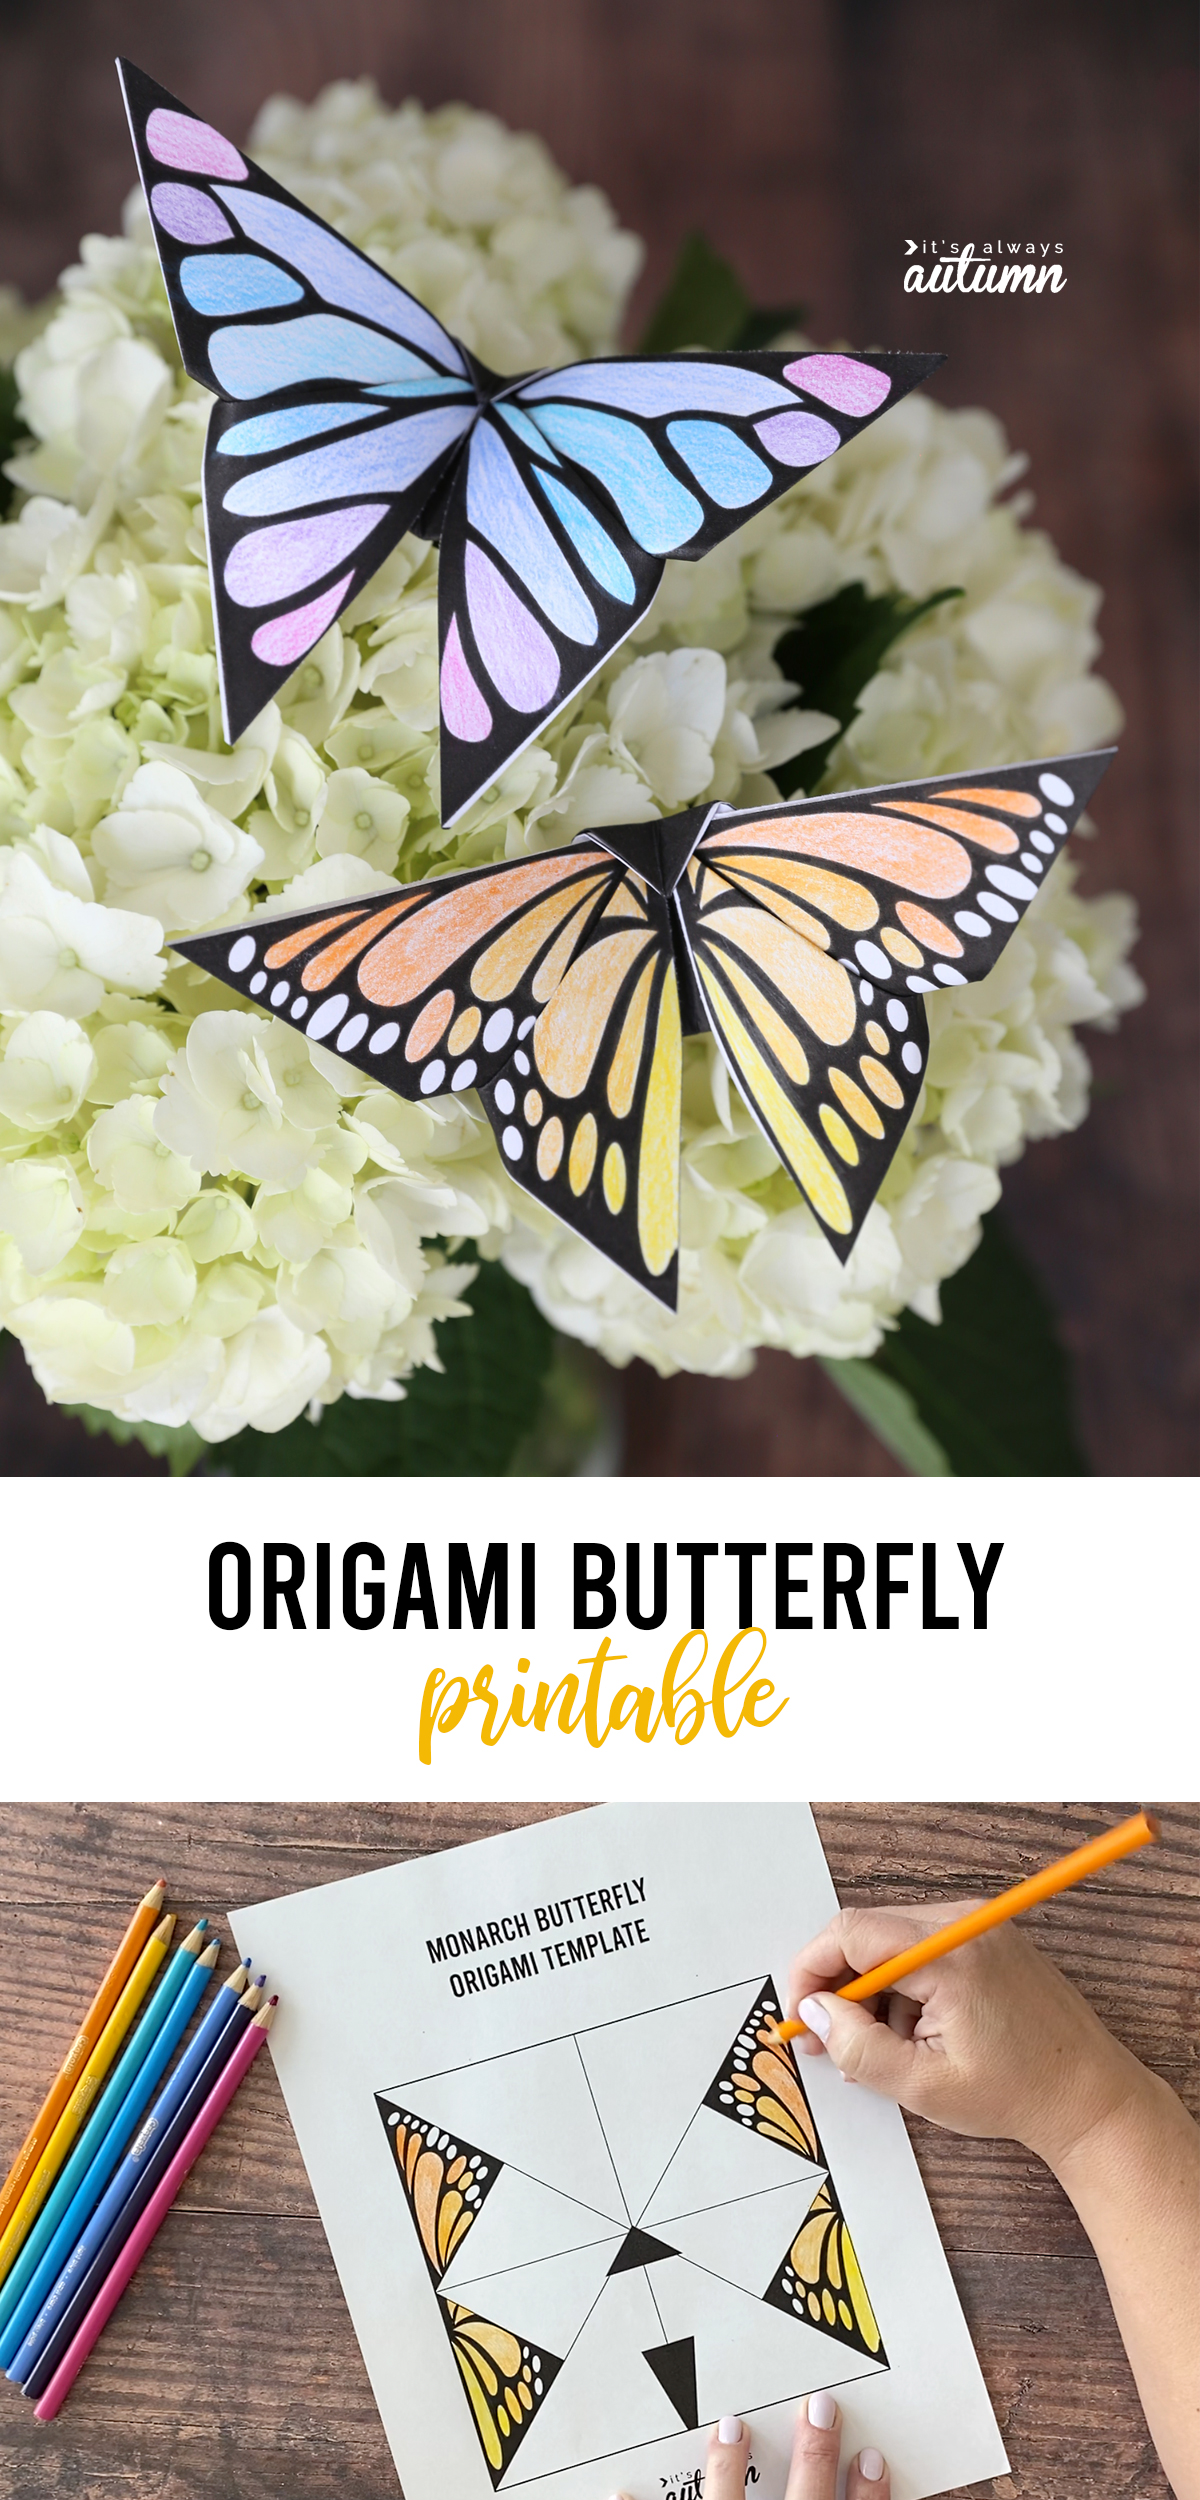 Two origami butterflies on flowers; words: origami butterfly printable; hand coloring in butterfly template